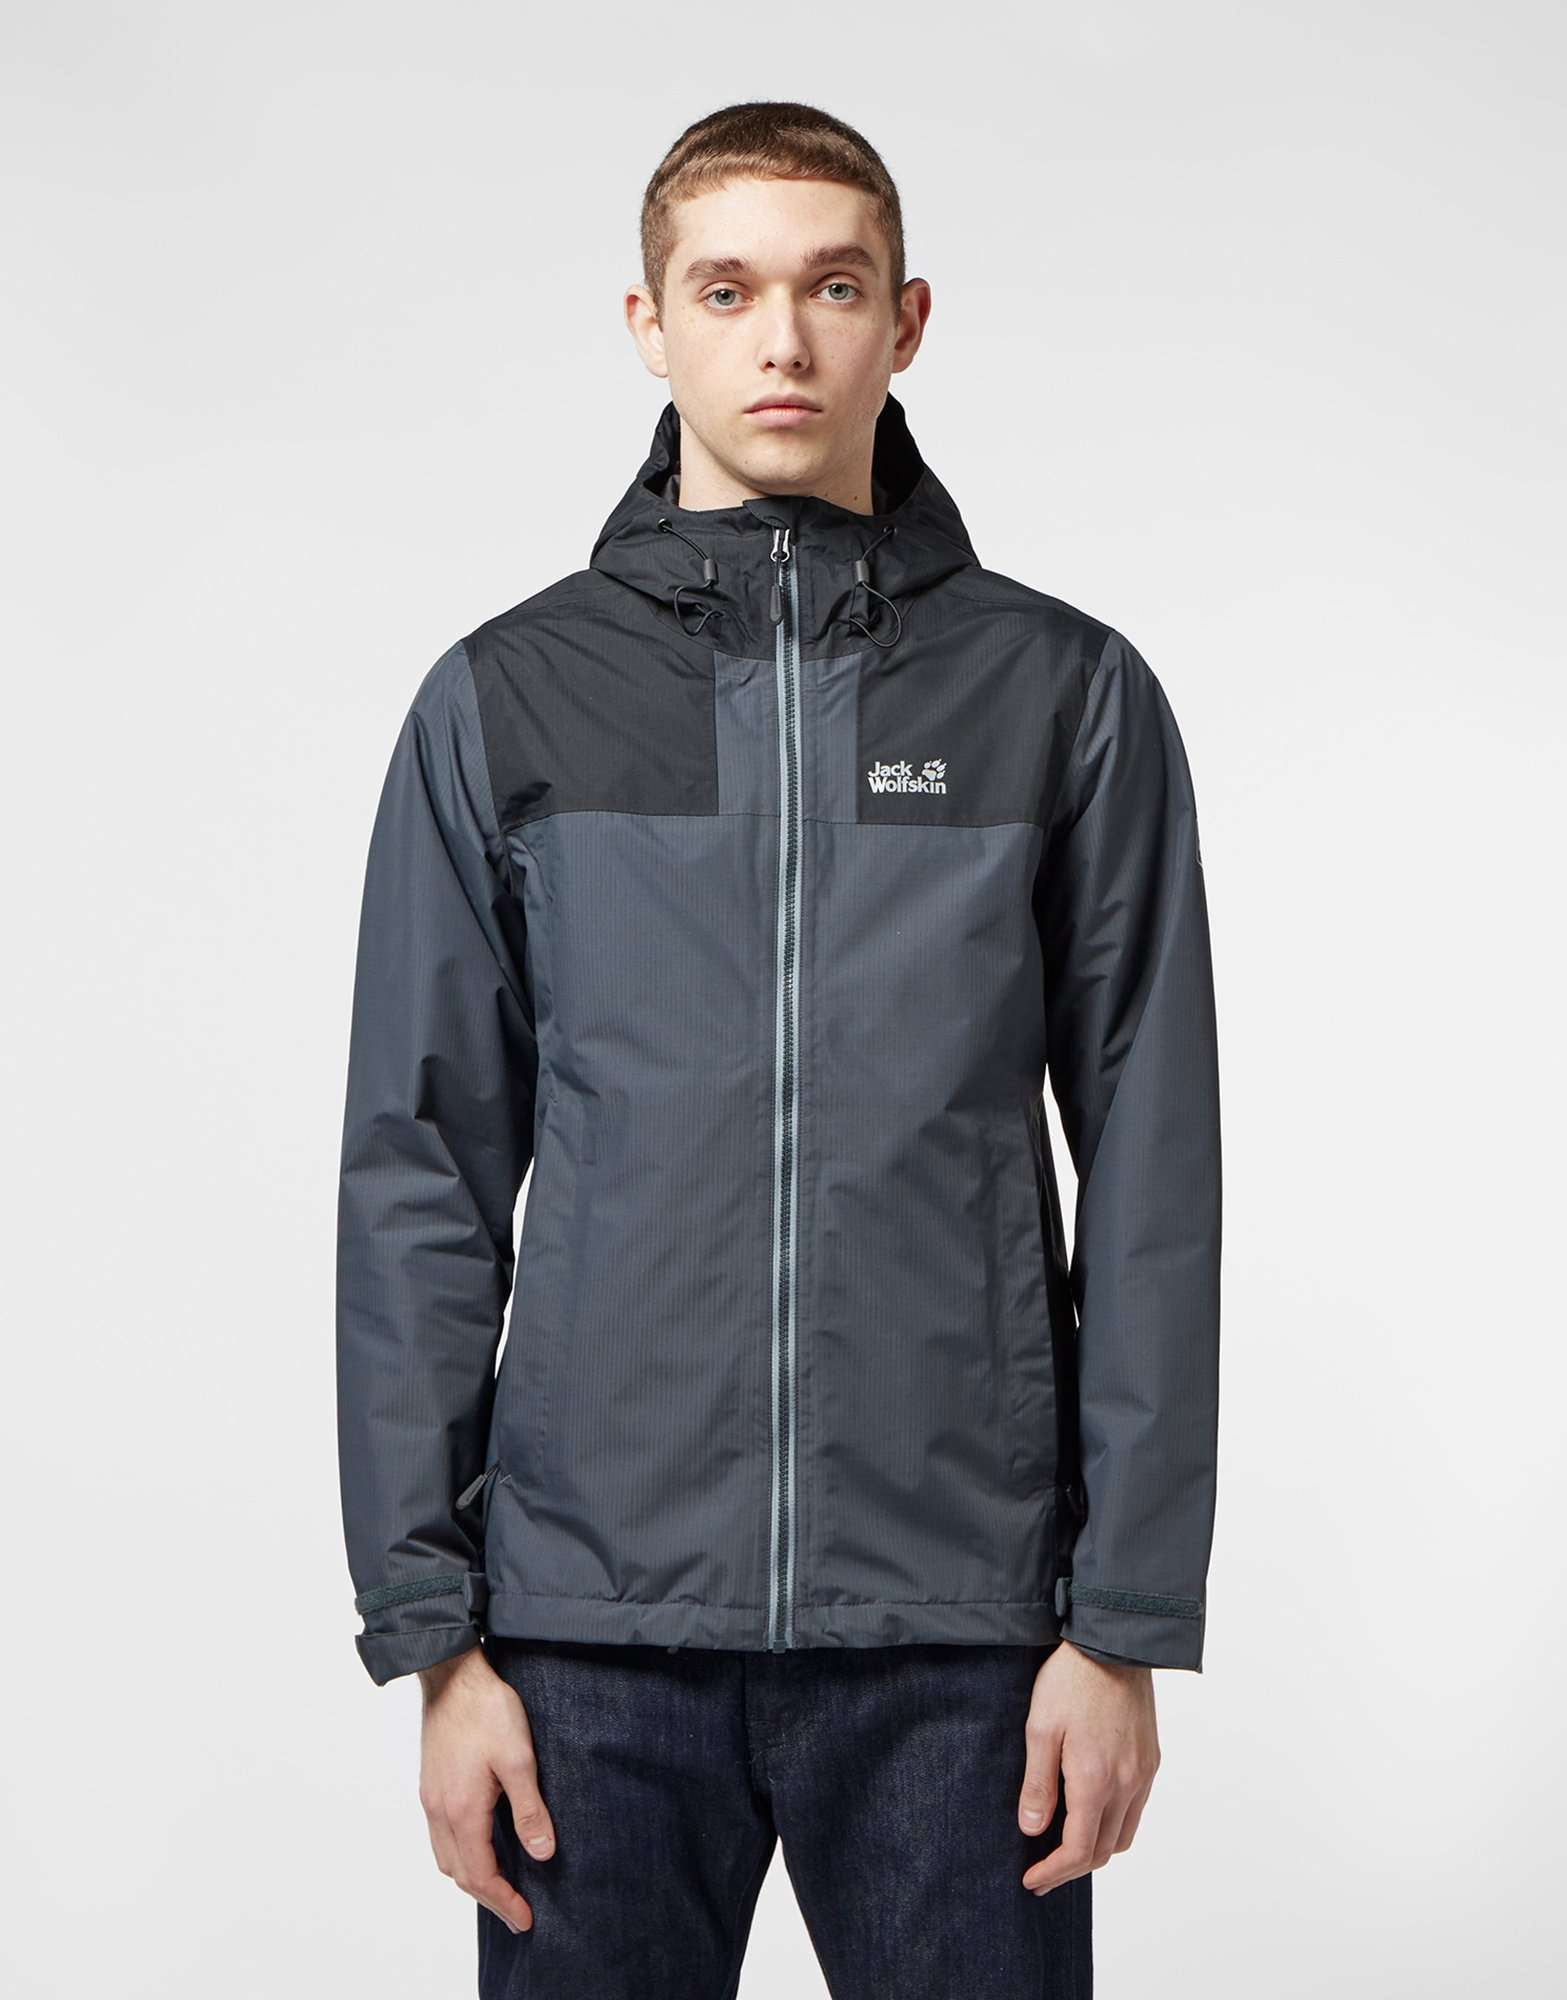 Jack Wolfskin Upper Lightweight Jacket